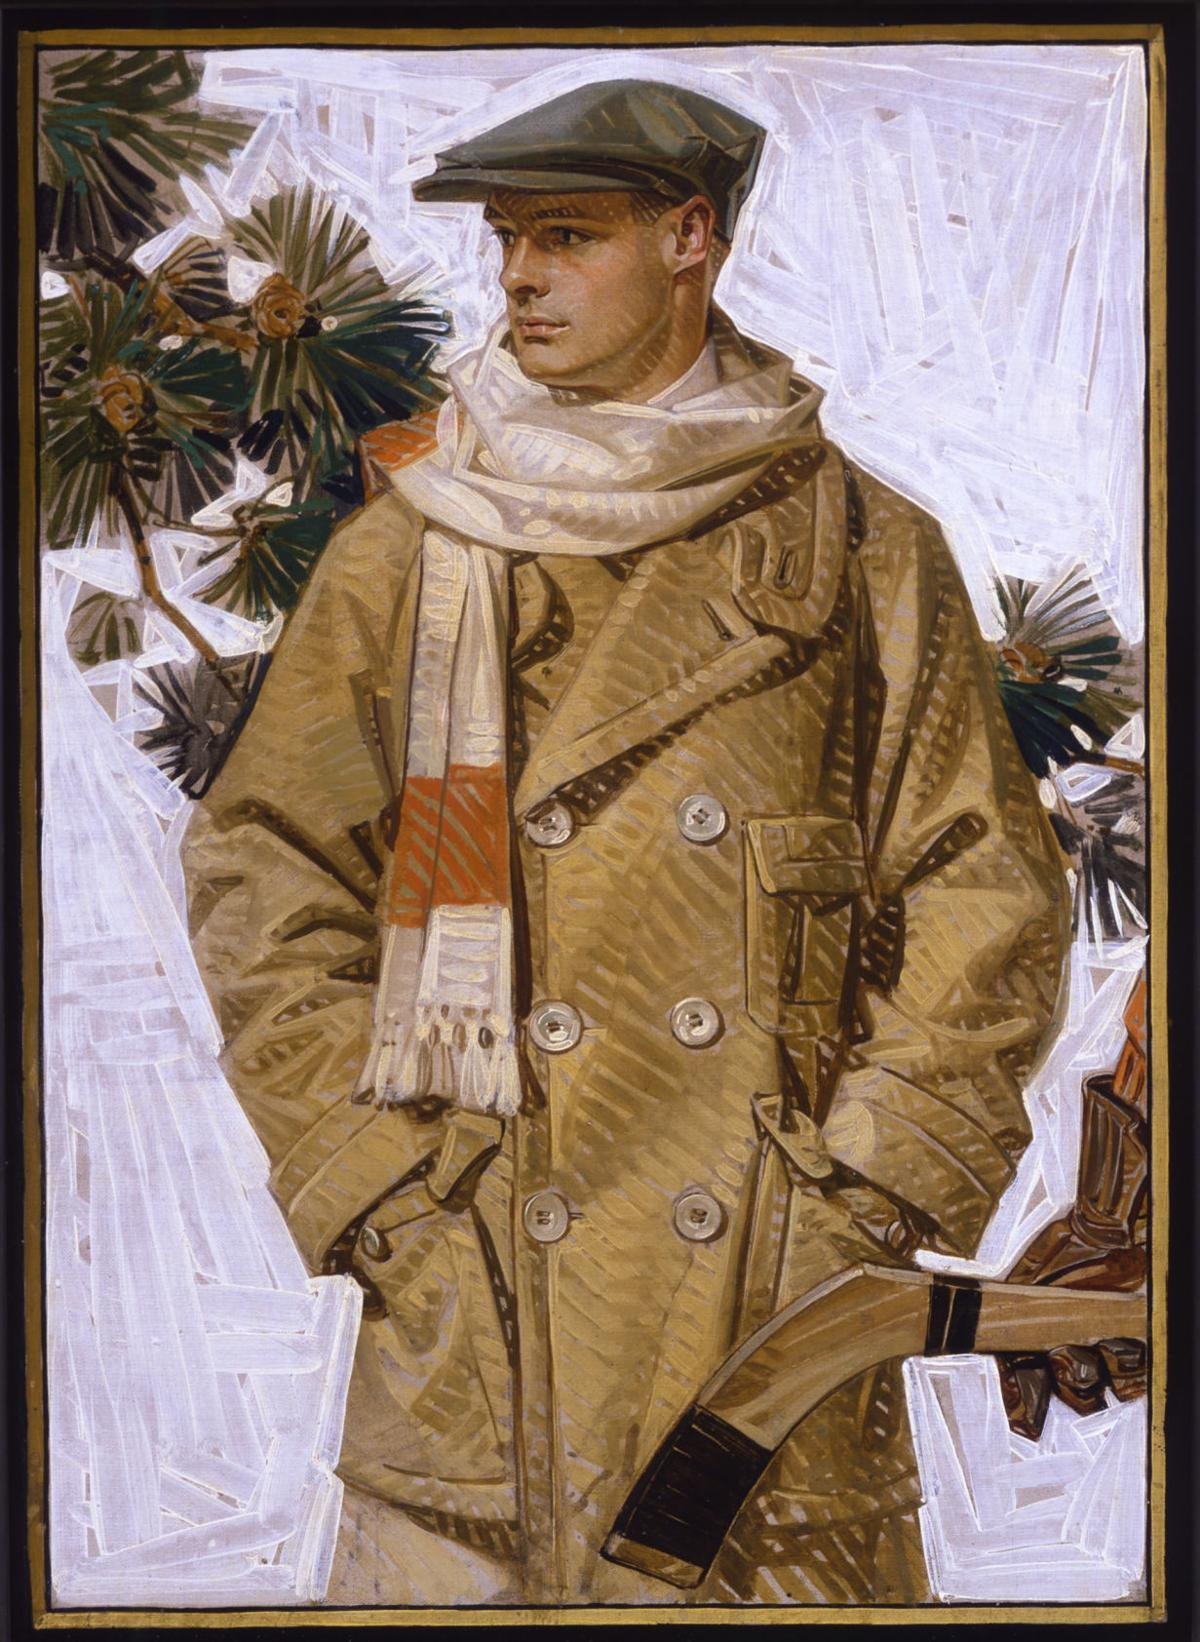 Man in Coat and Scarf